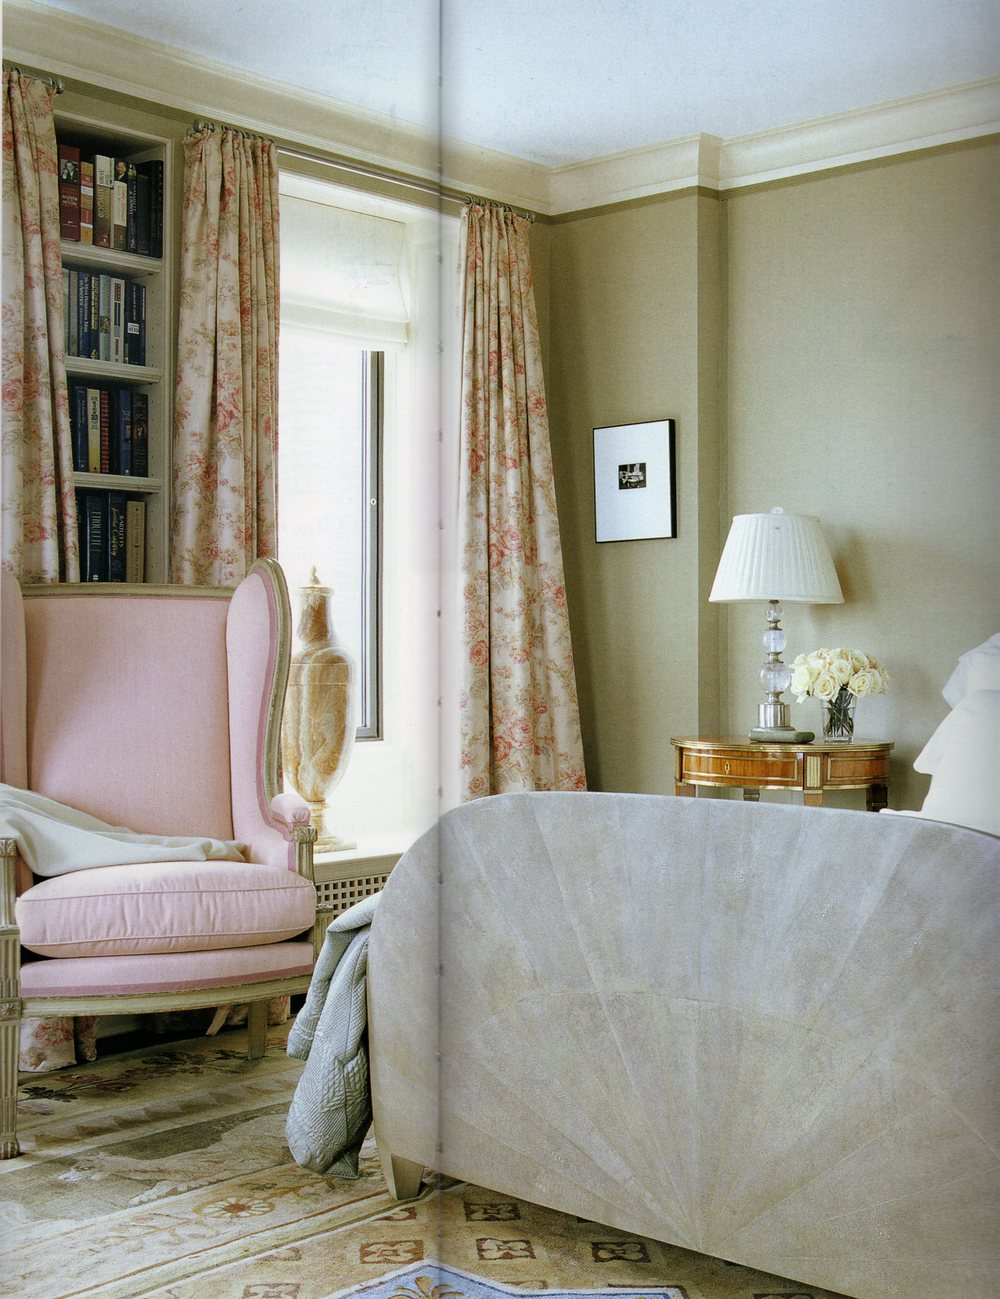 Damask Rose - Faded on Oyster